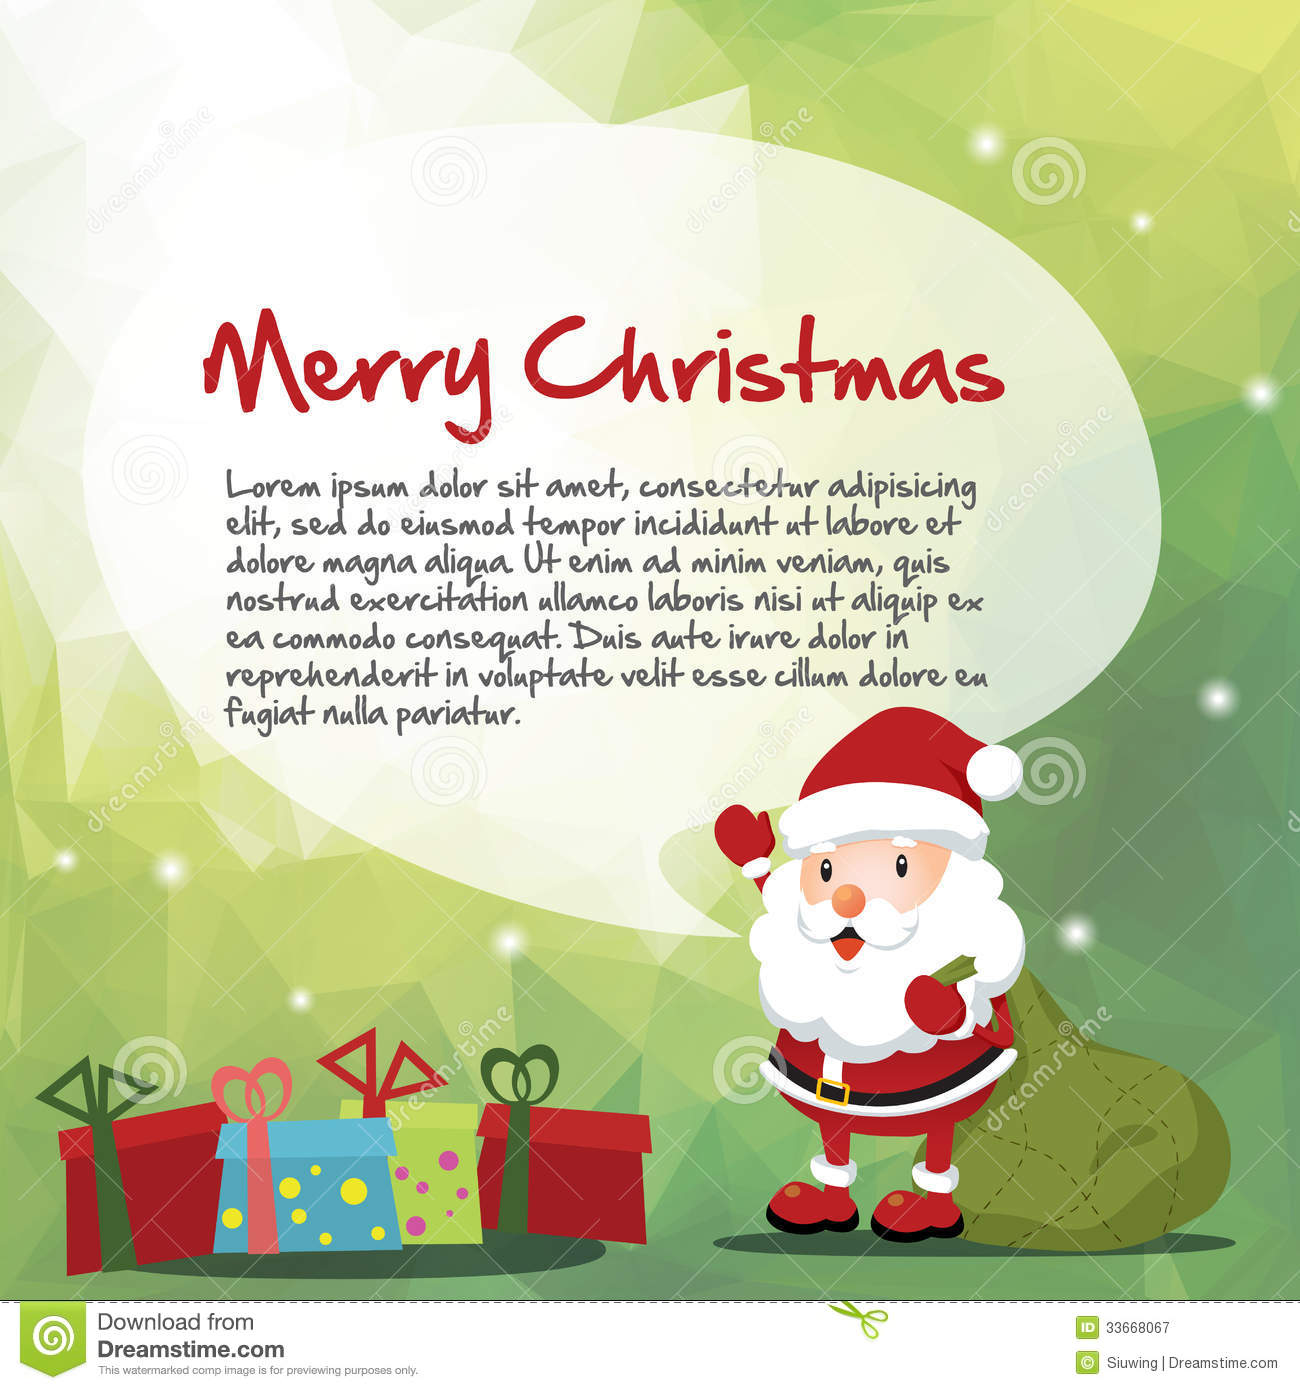 Santa And Christmas Message Stock Vector - Illustration of laugh ...